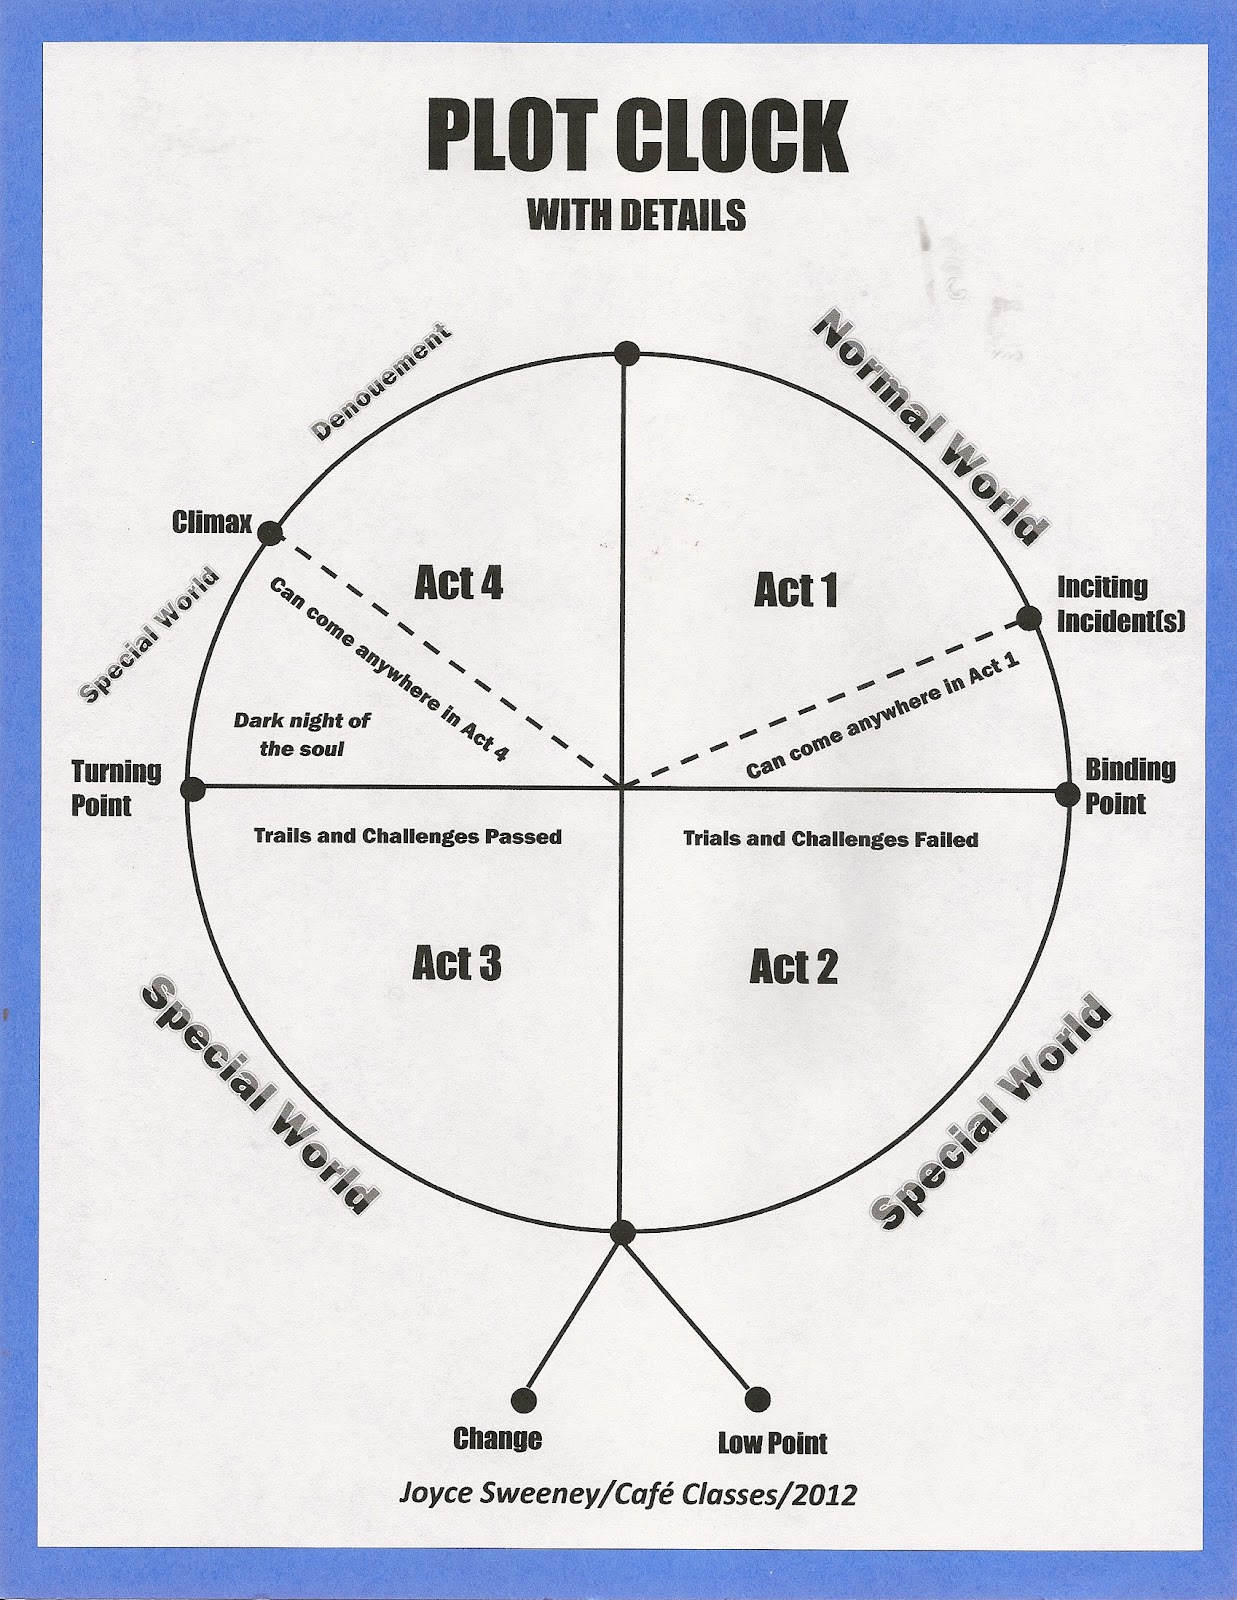 hight resolution of for more information about the plot clock review these earlier posts from picture this